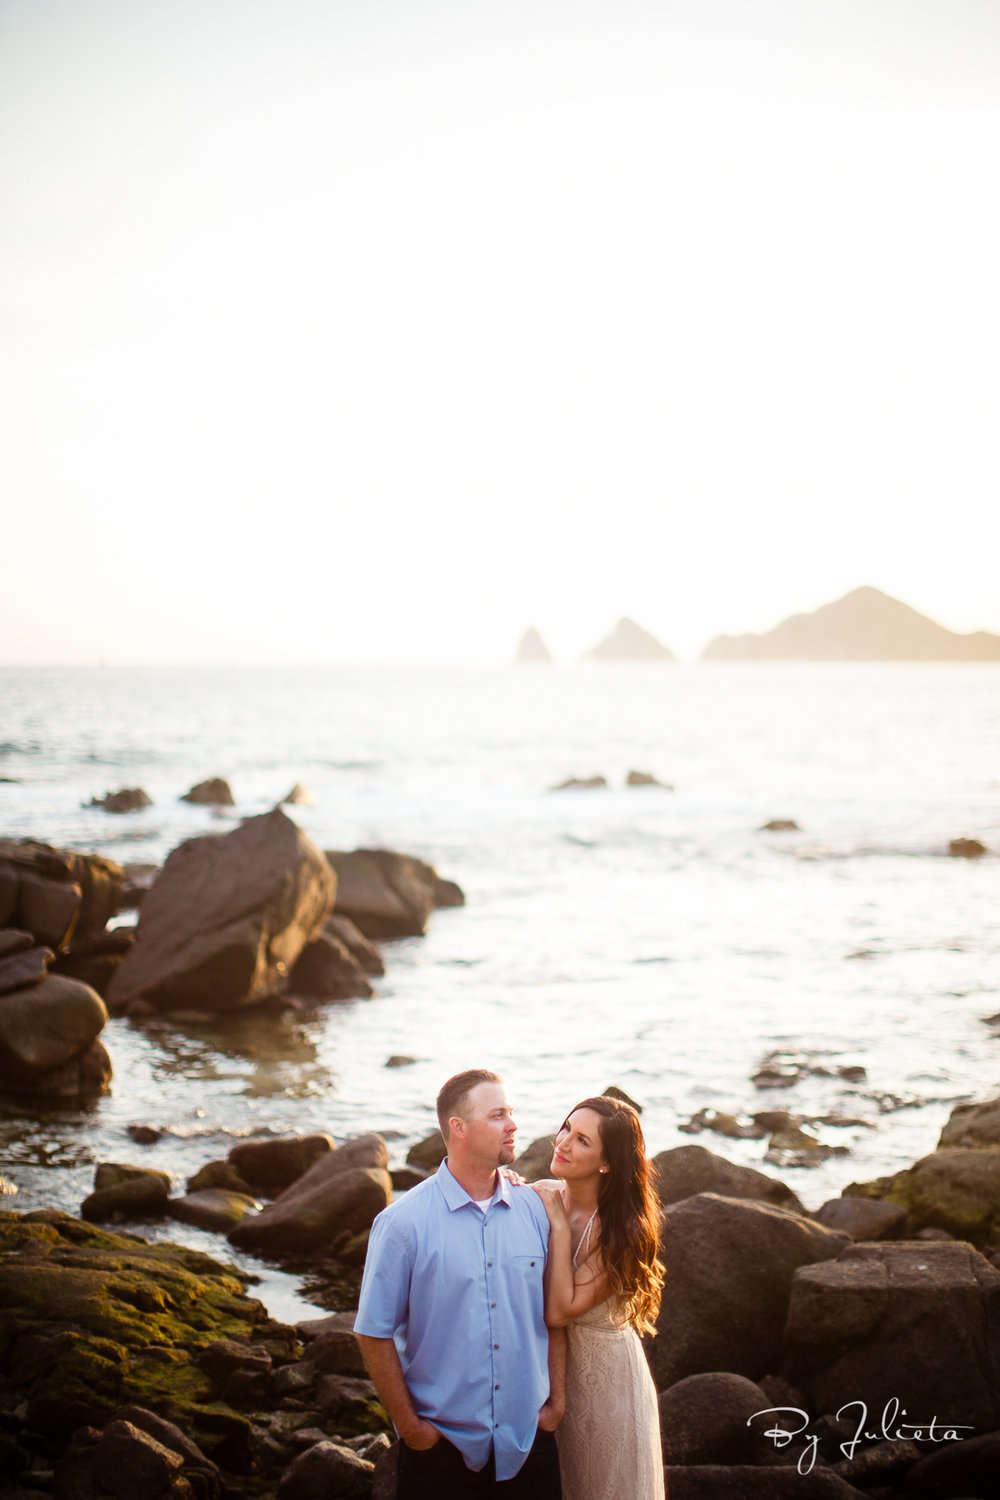 Mexico Engagement. C+D. The Cape Cabo. Julieta Amezcua Photography.  (110 of 115).jpg